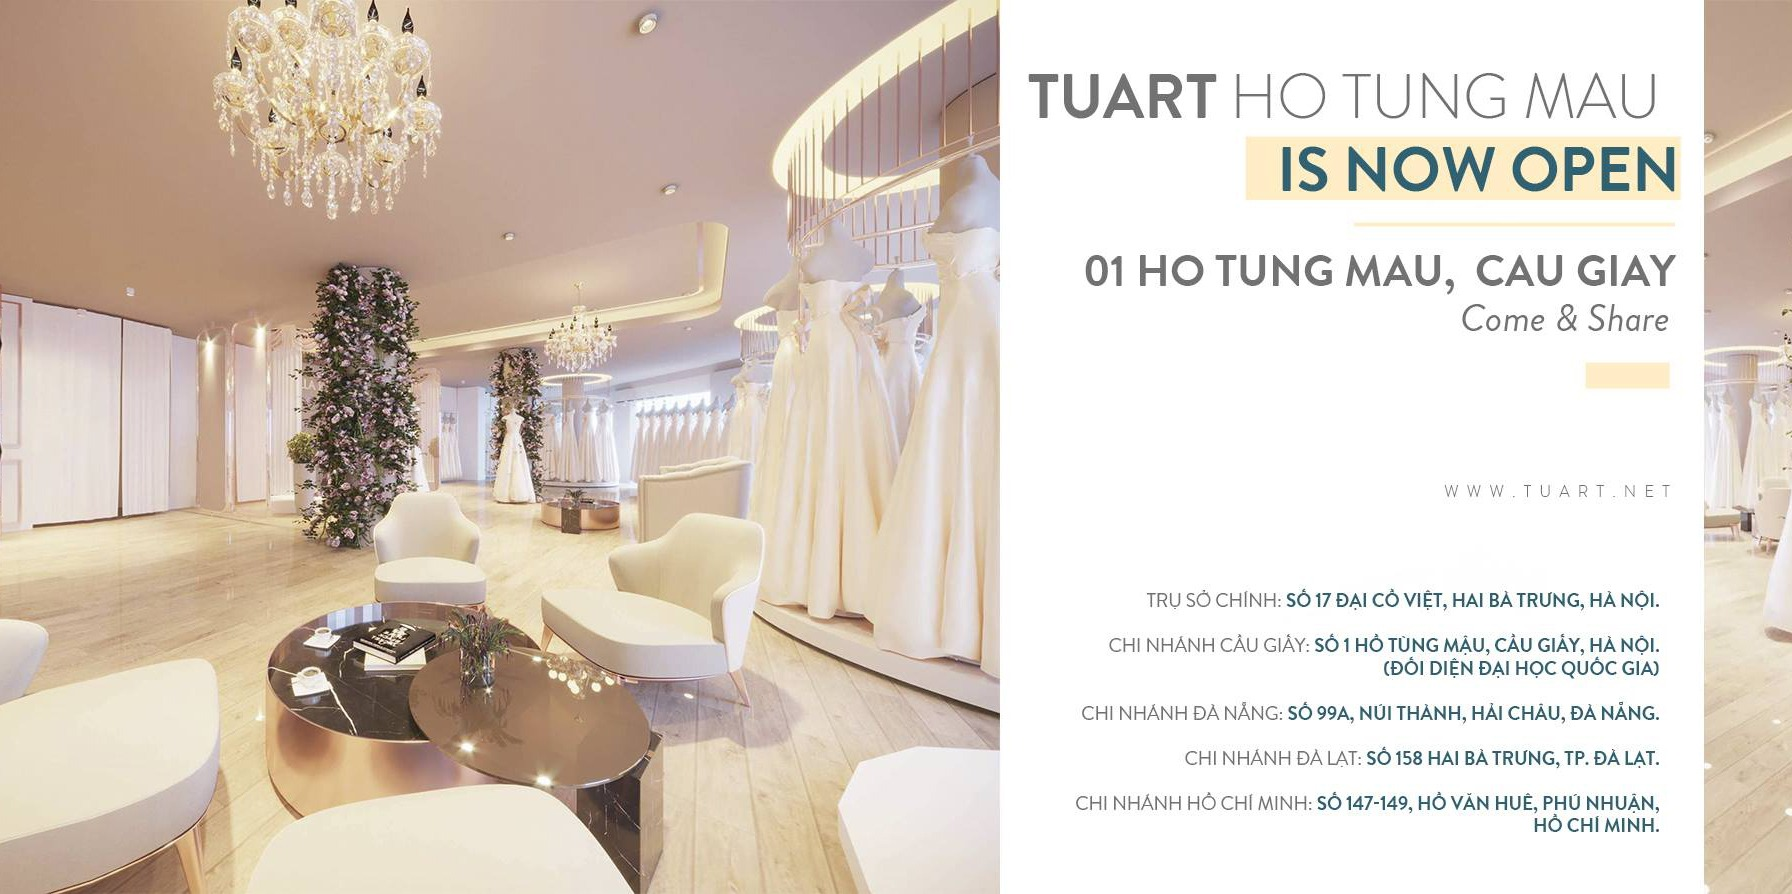 TuArt Cầu Giấy is opening